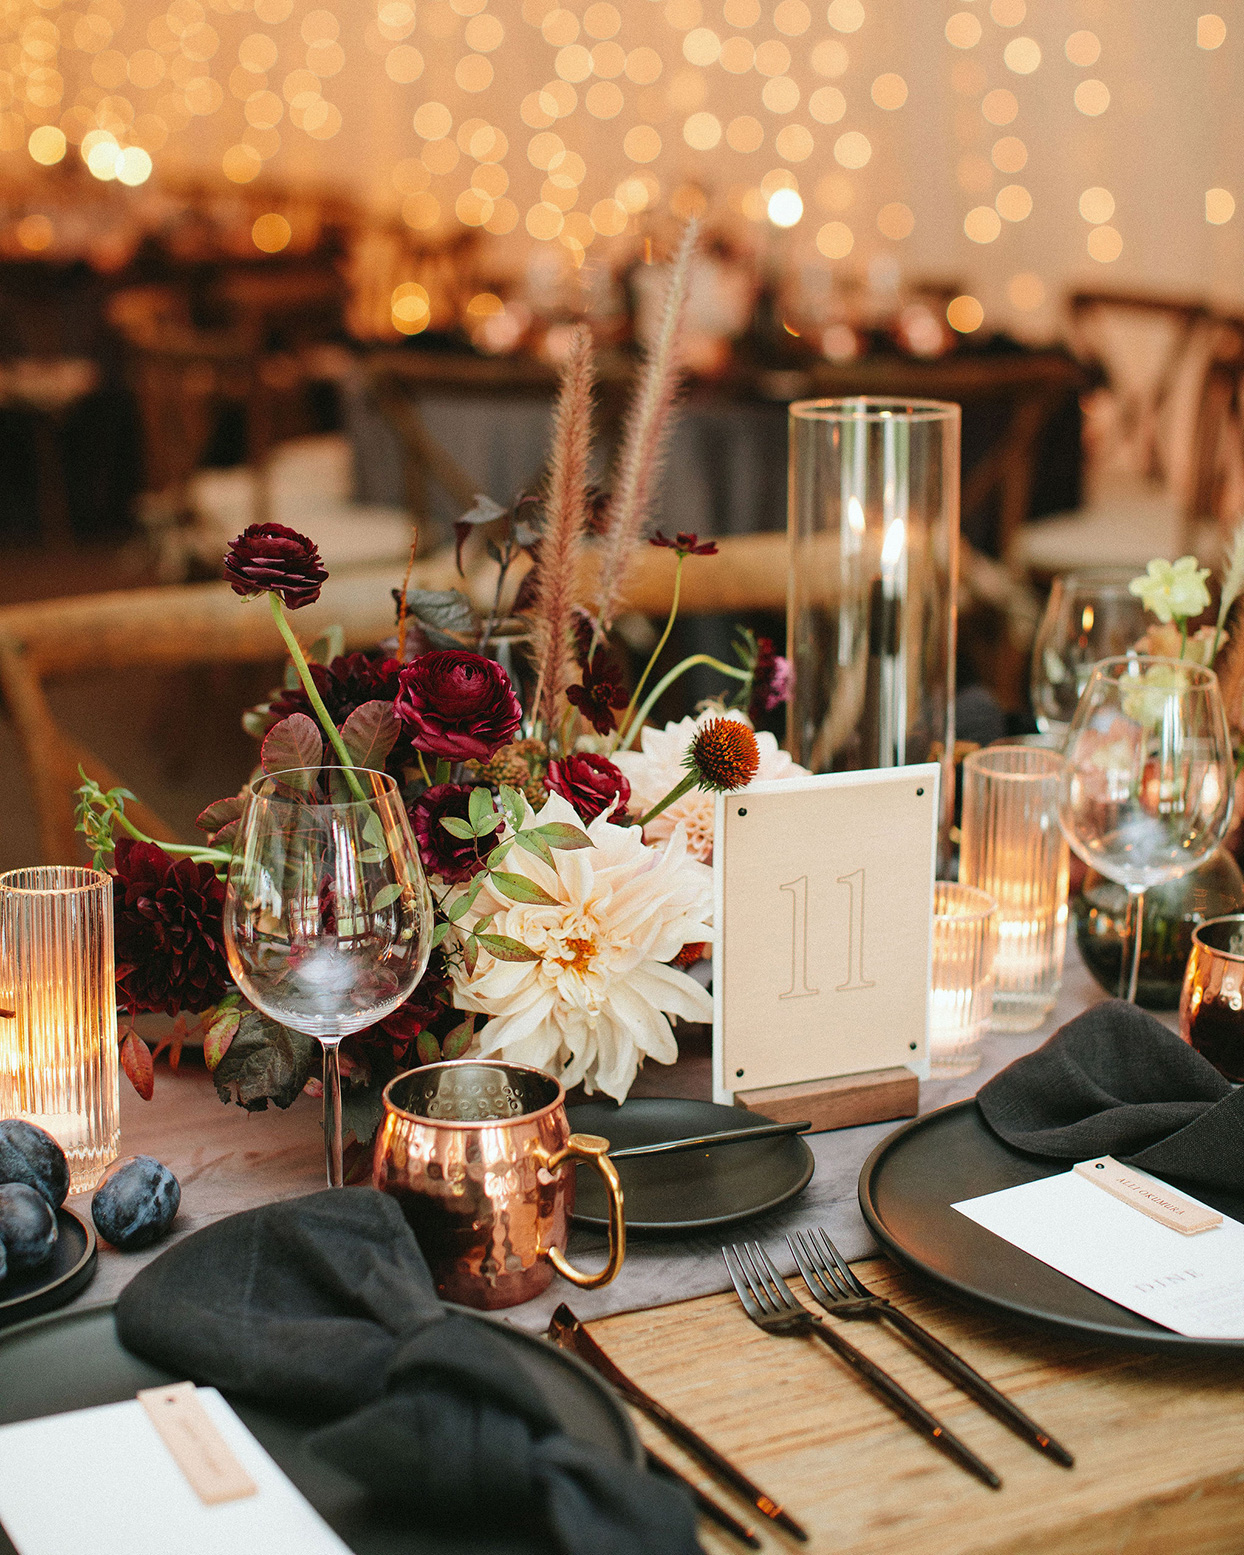 clare tim wedding reception dark and burgundy table setting